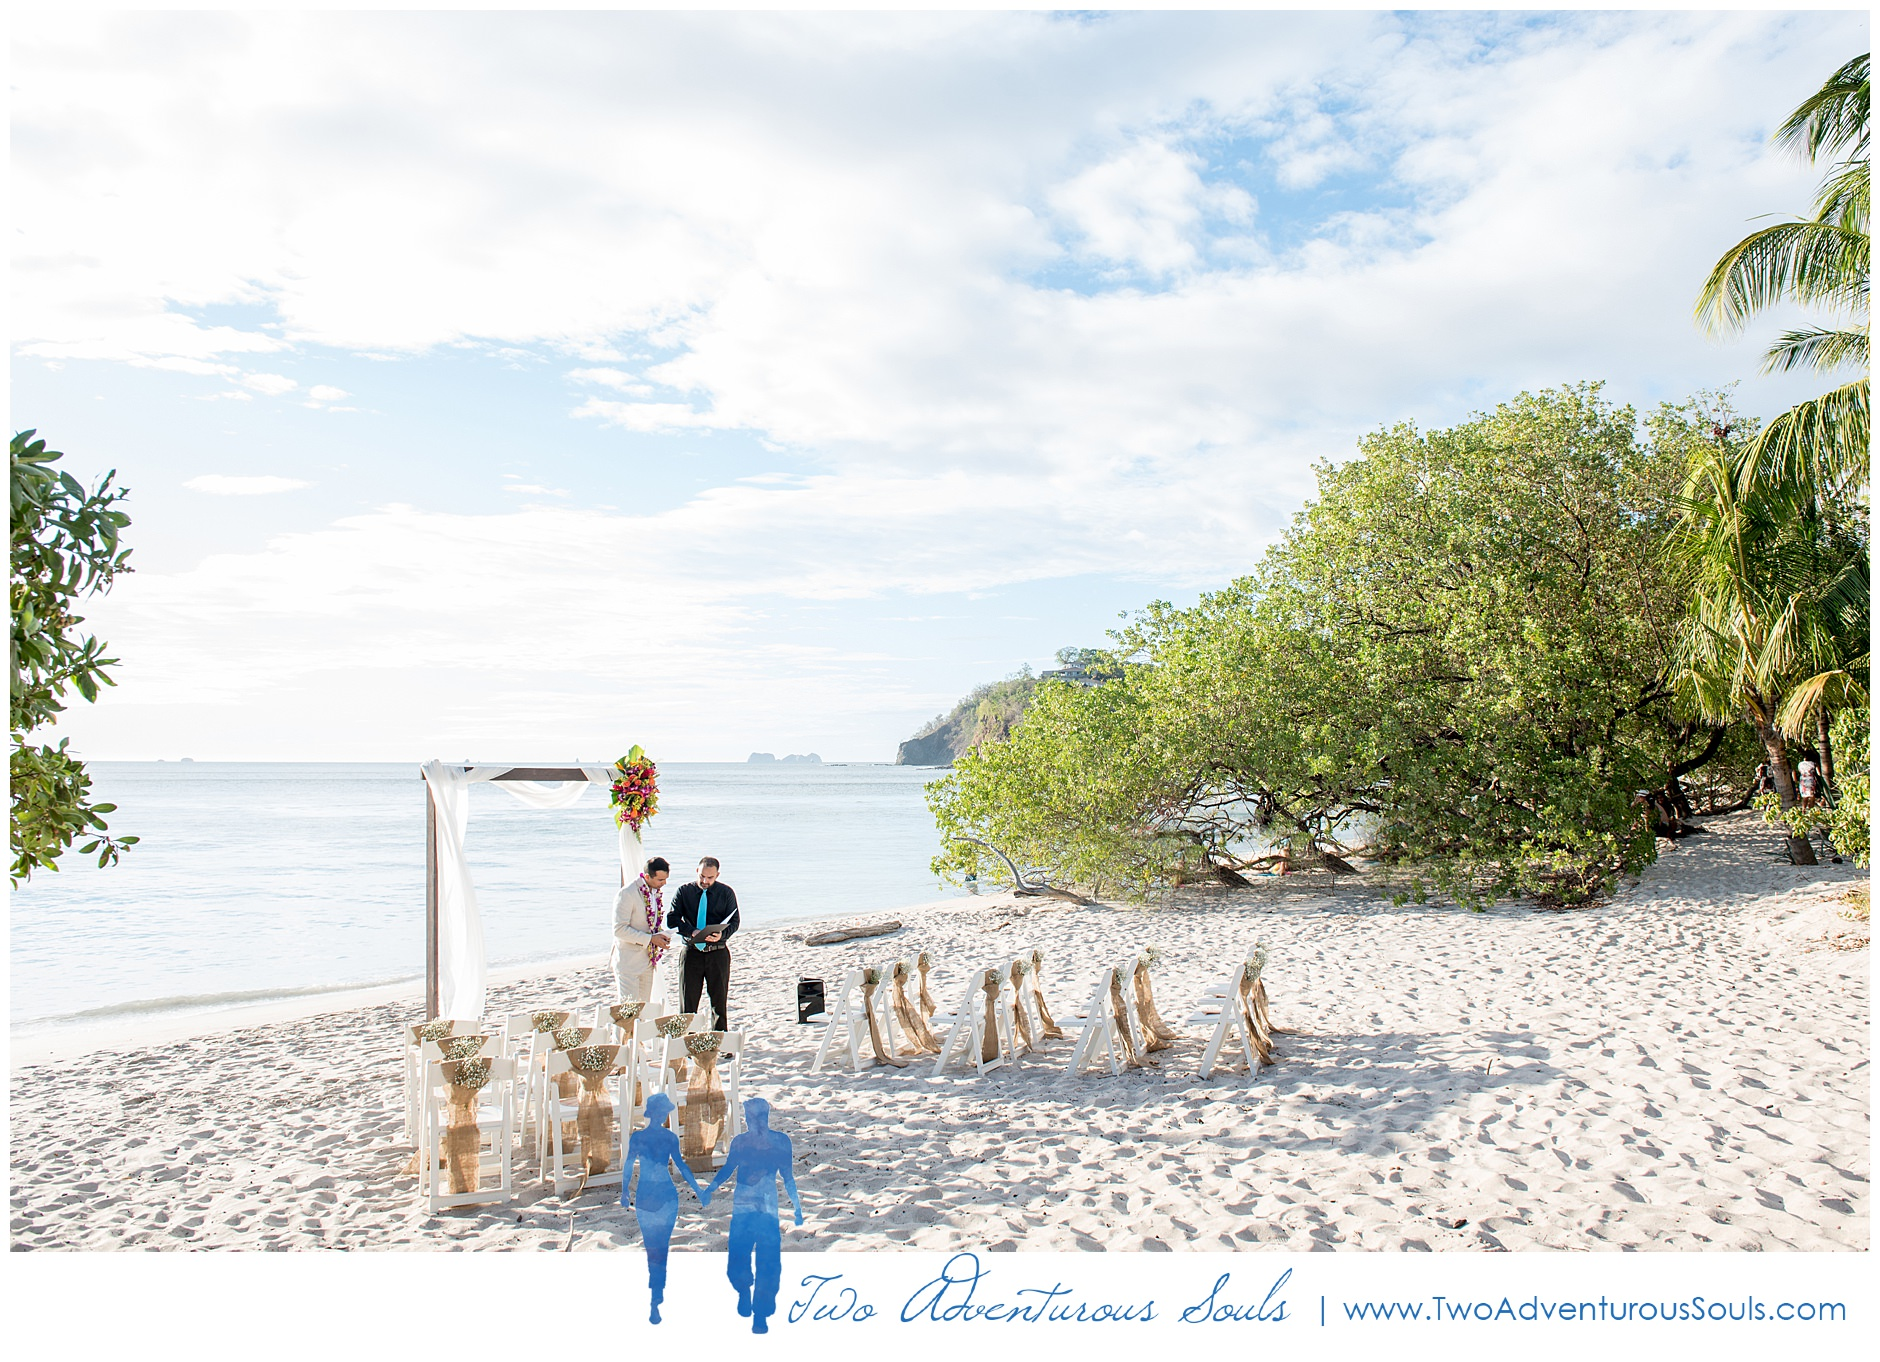 How to get married in Costa Rica, Costa Rica wedding photographers - HTGMICR_0004.jpg